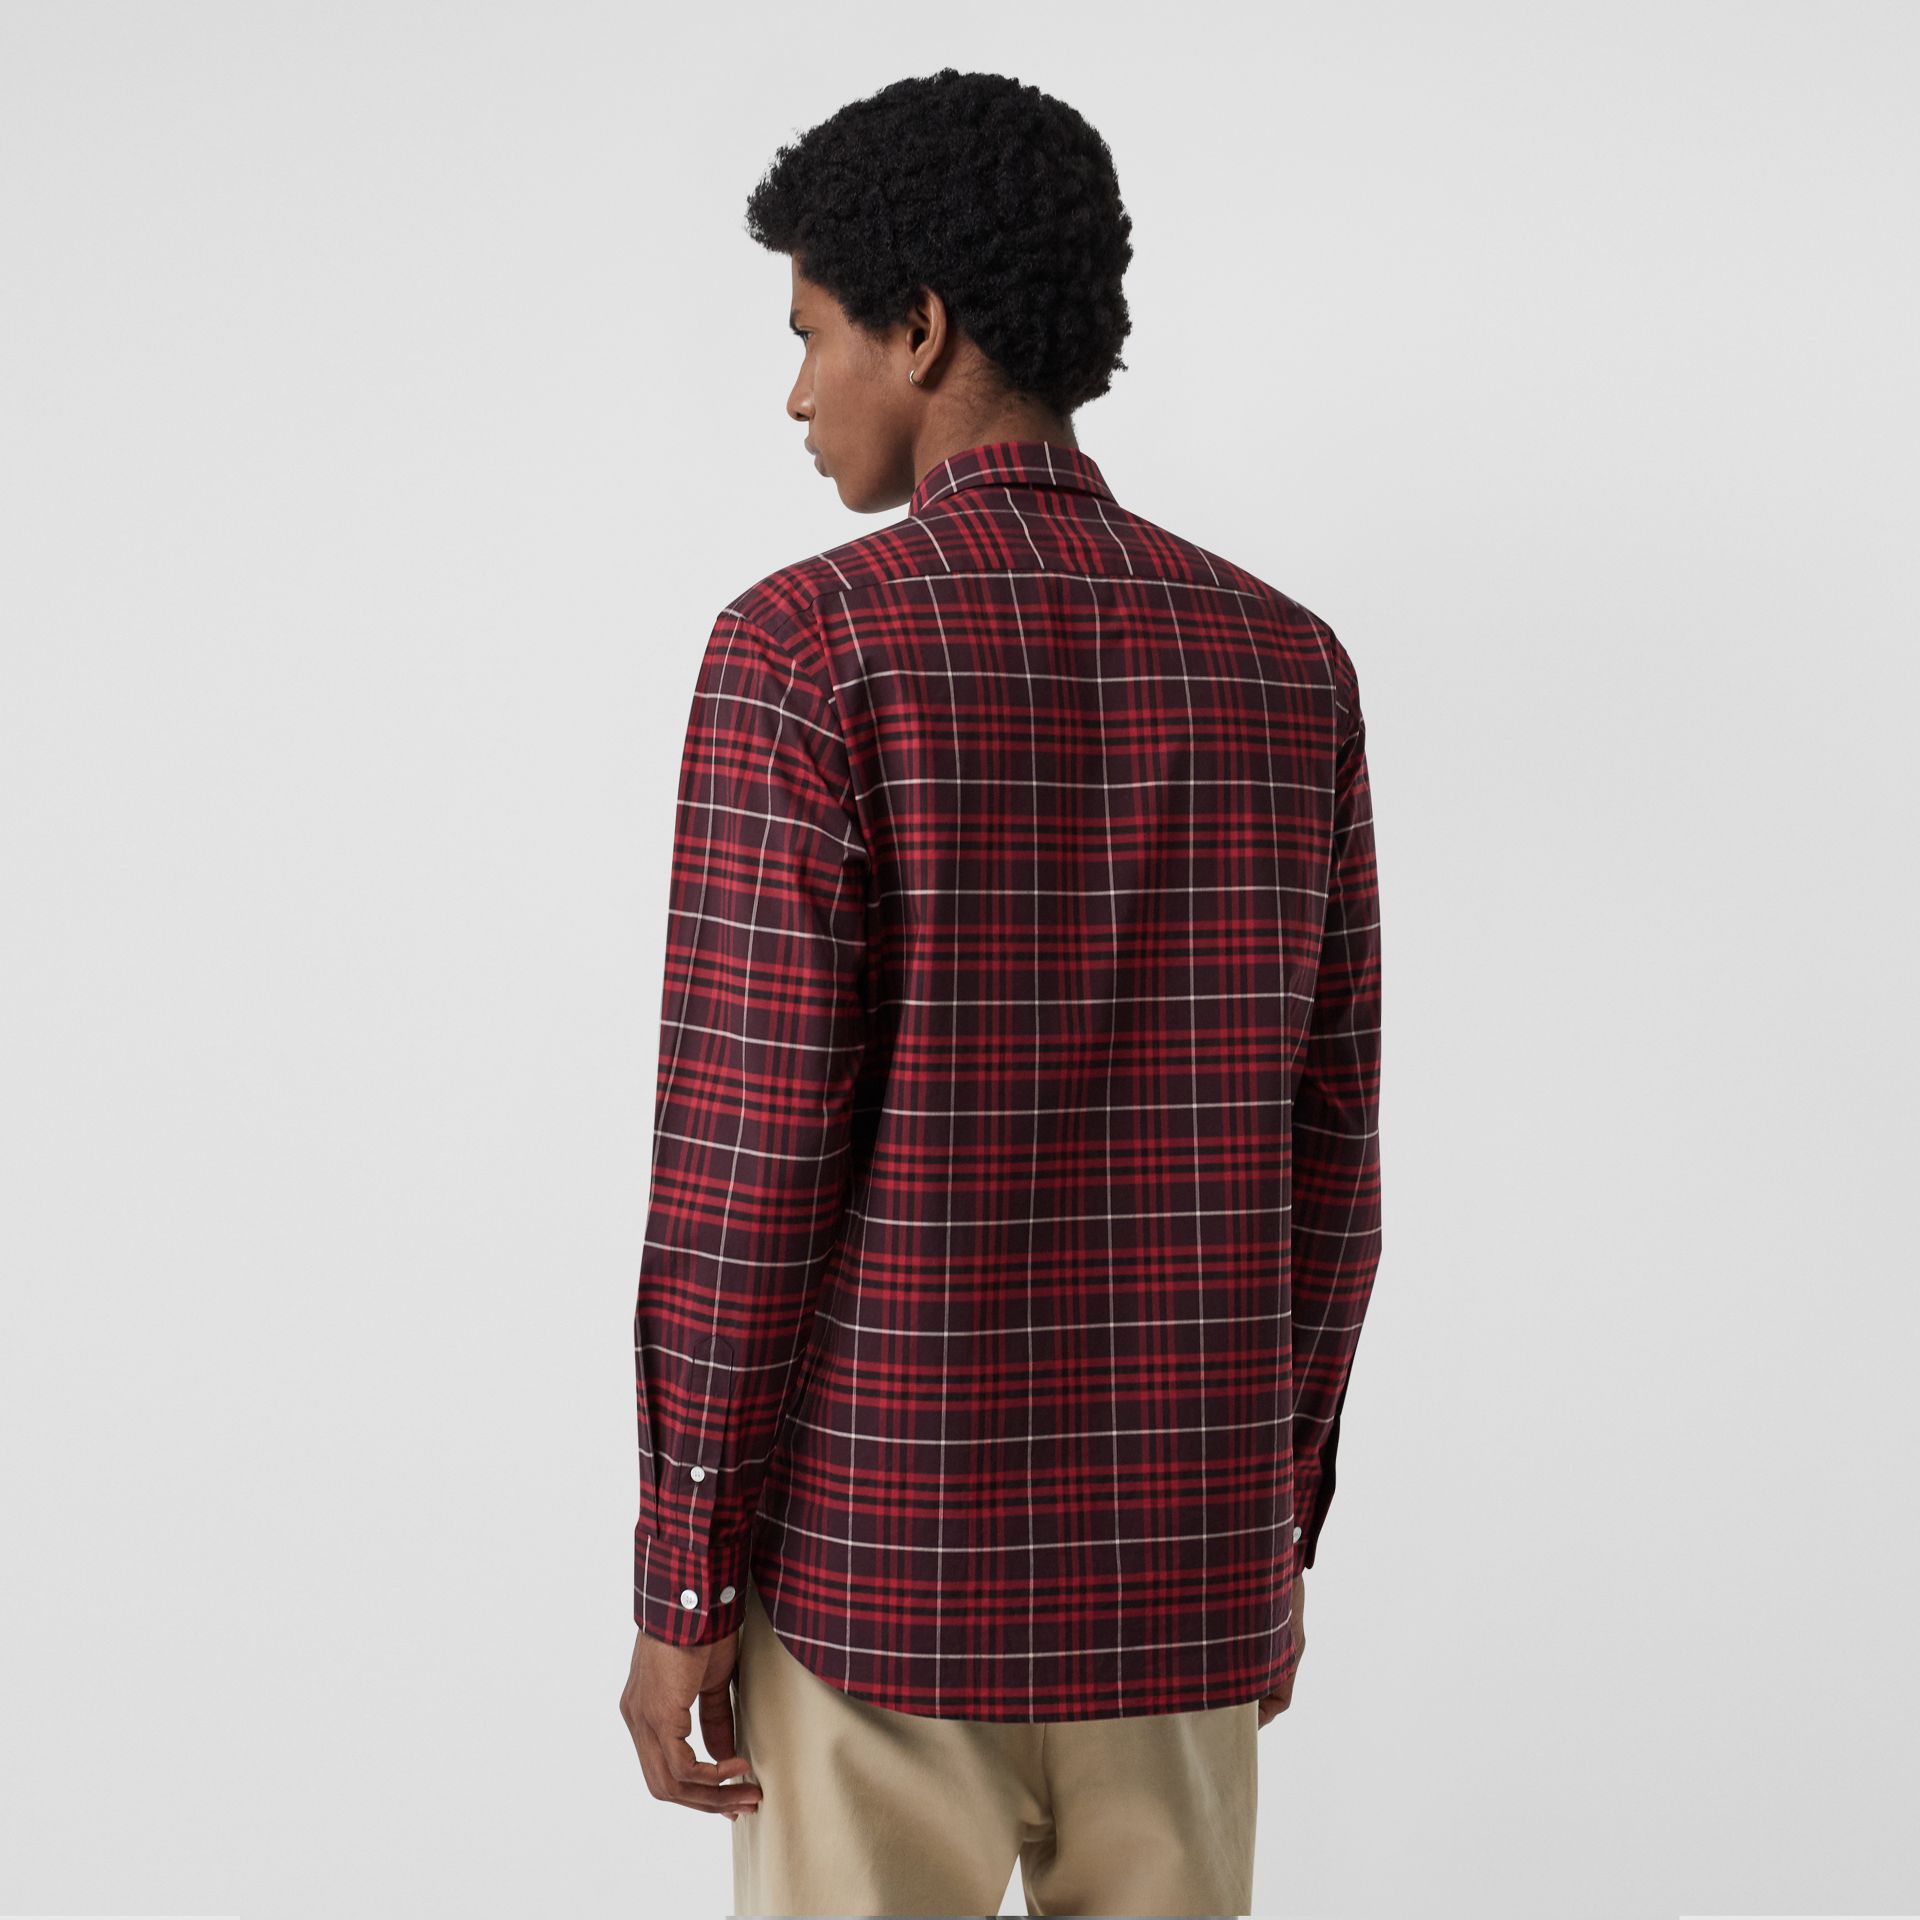 Chemise en coton extensible à motif check (Bordeaux) - Homme | Burberry - photo de la galerie 2